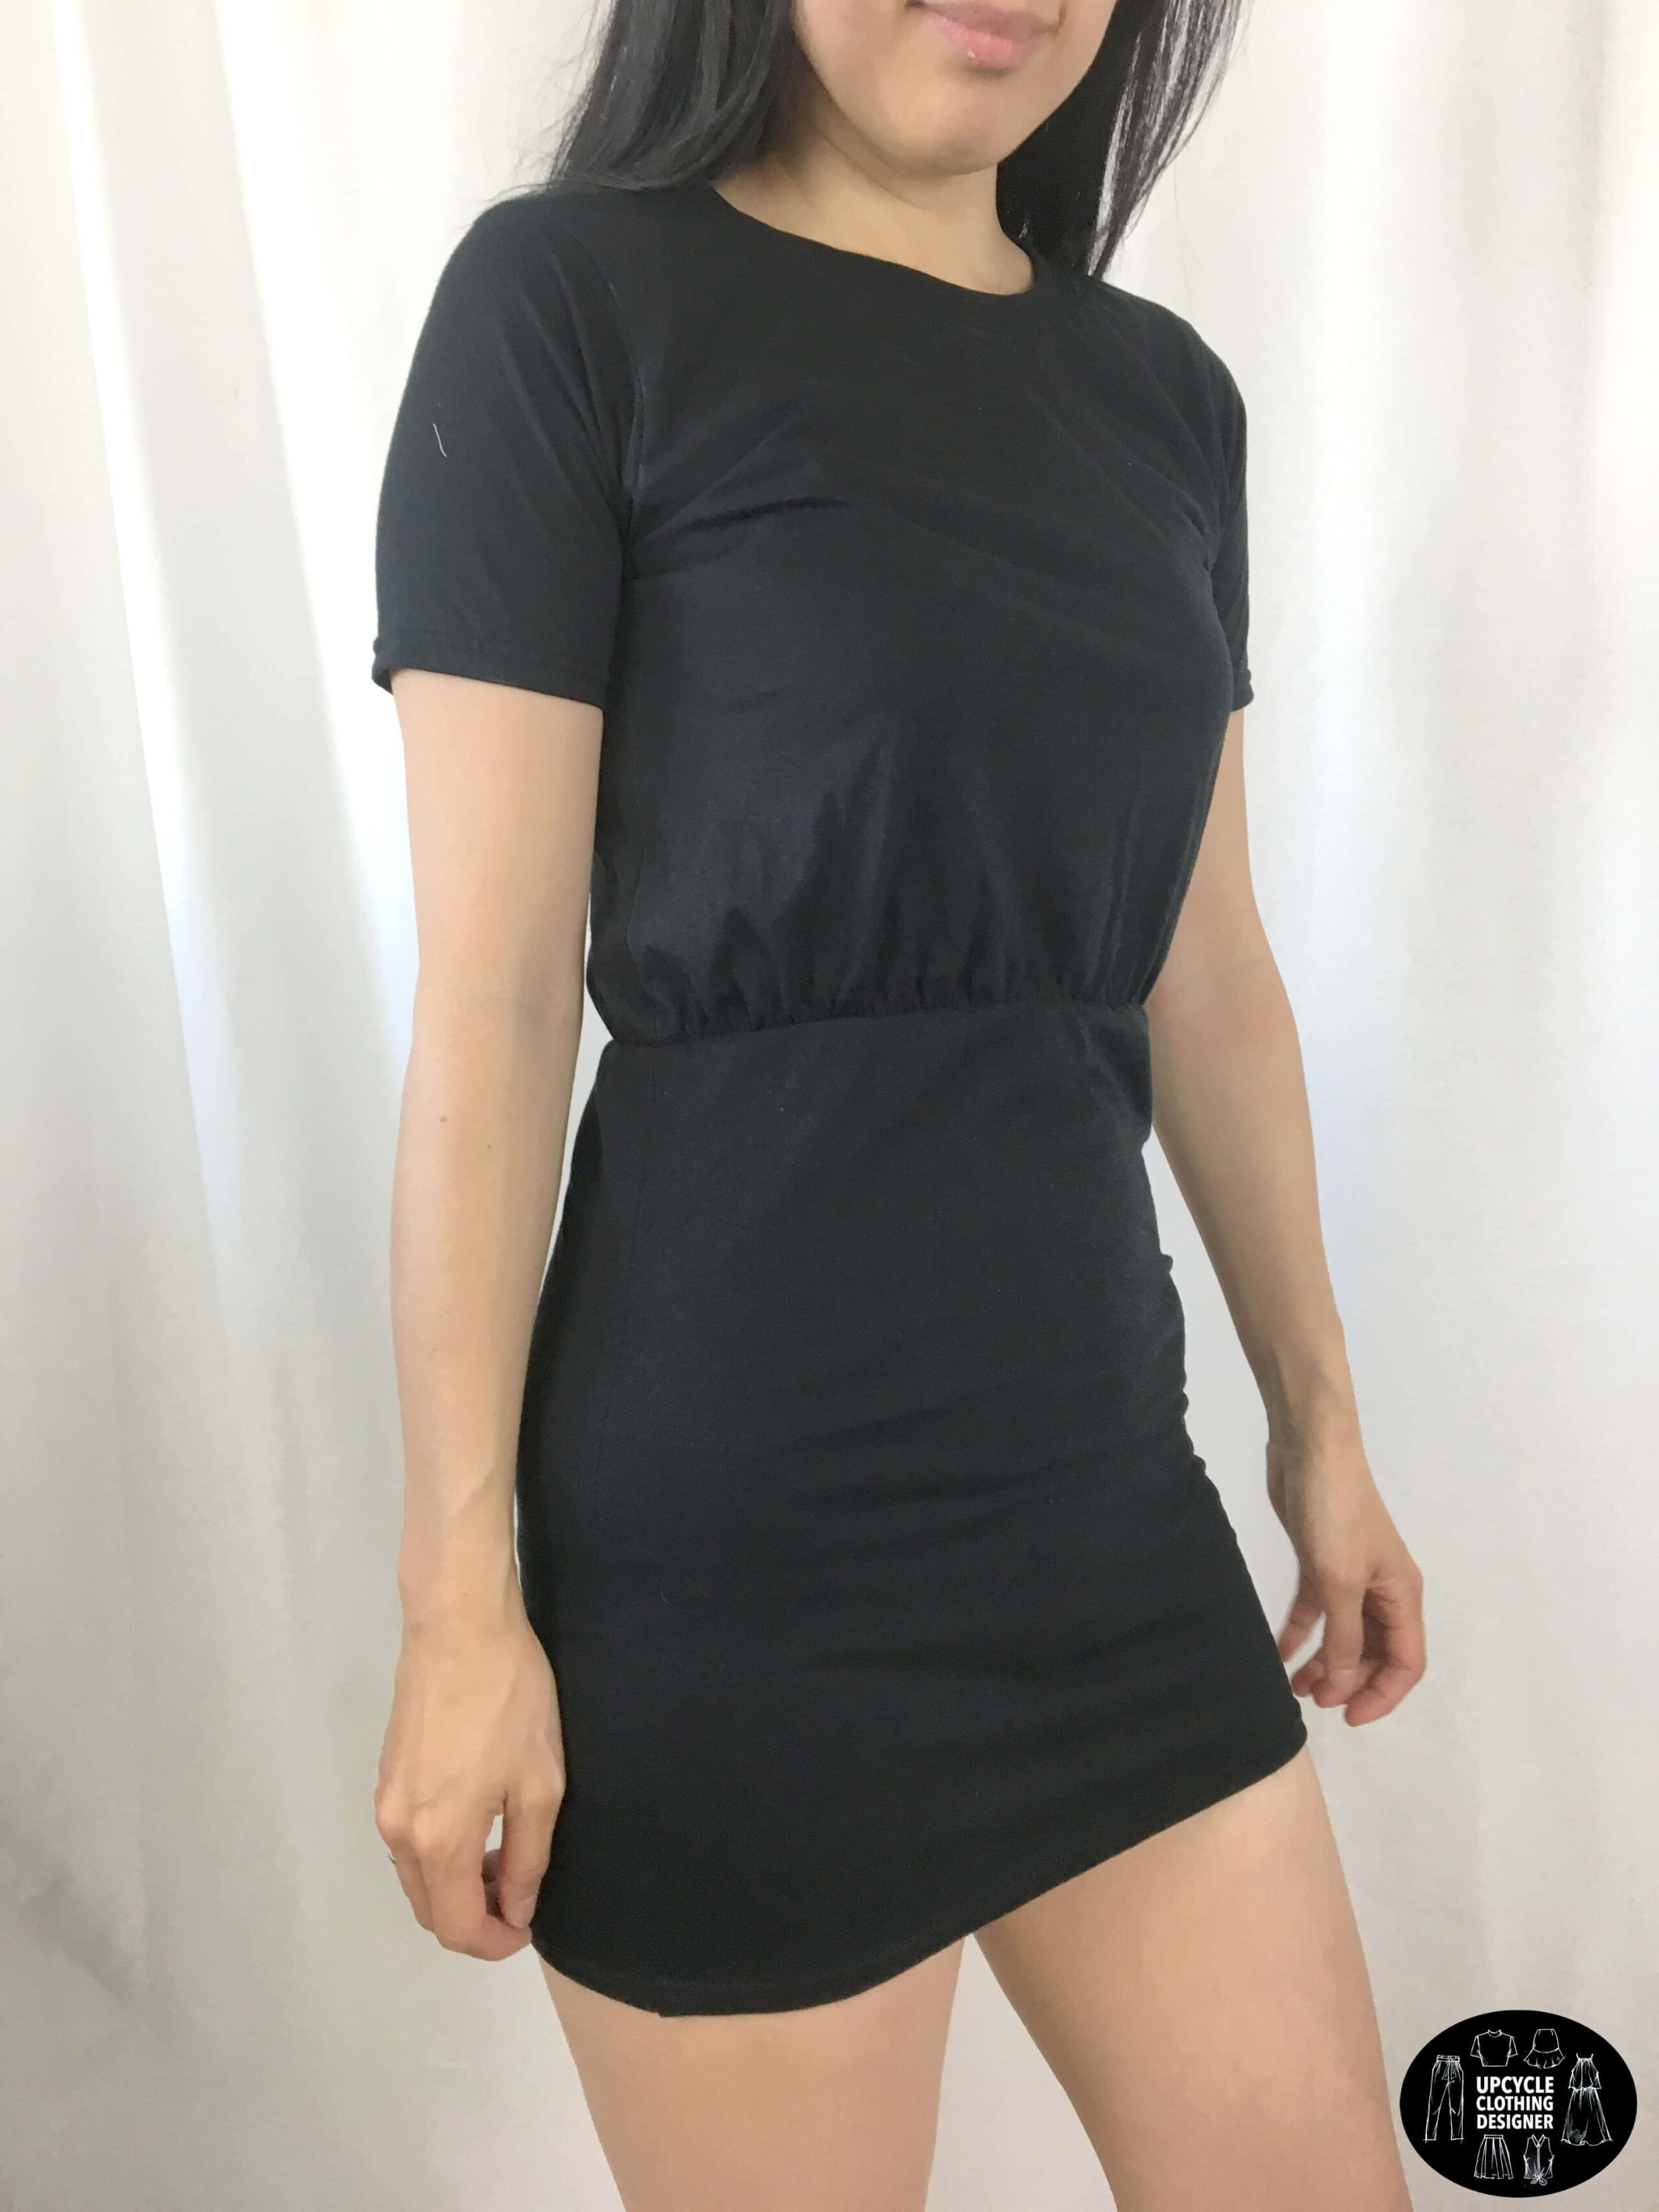 DIY blouson dress from t-shirt sideview